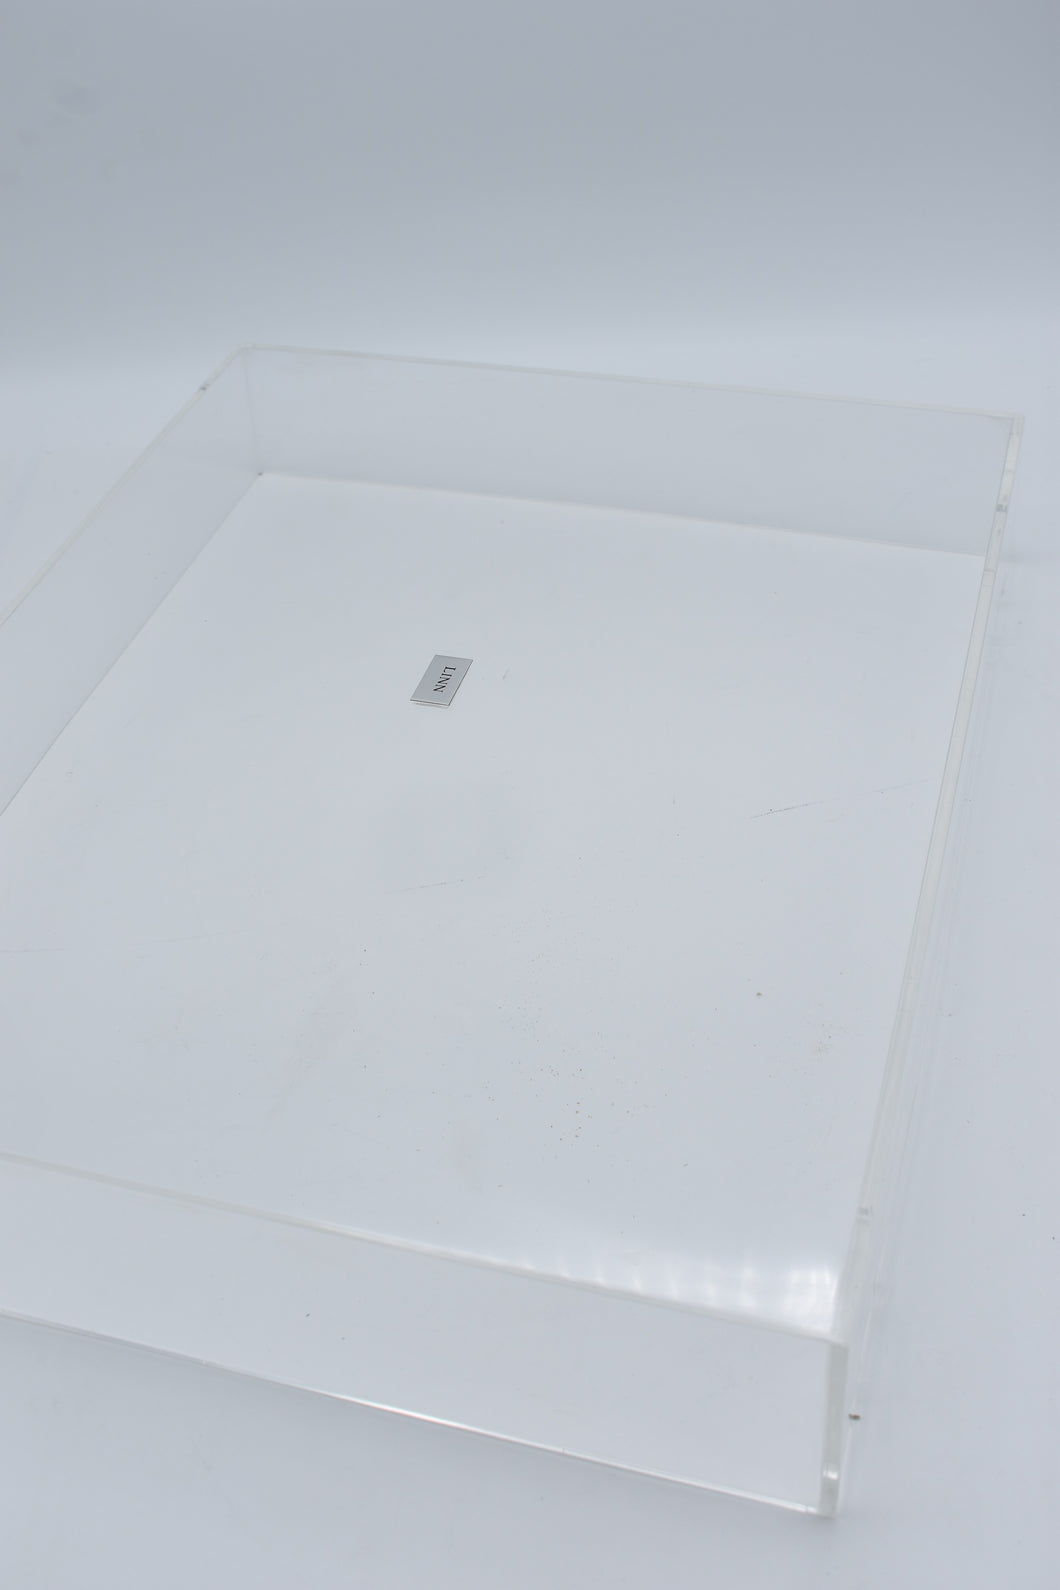 Linn LP12 Clear Lid  (Preowned, Ref 001290)